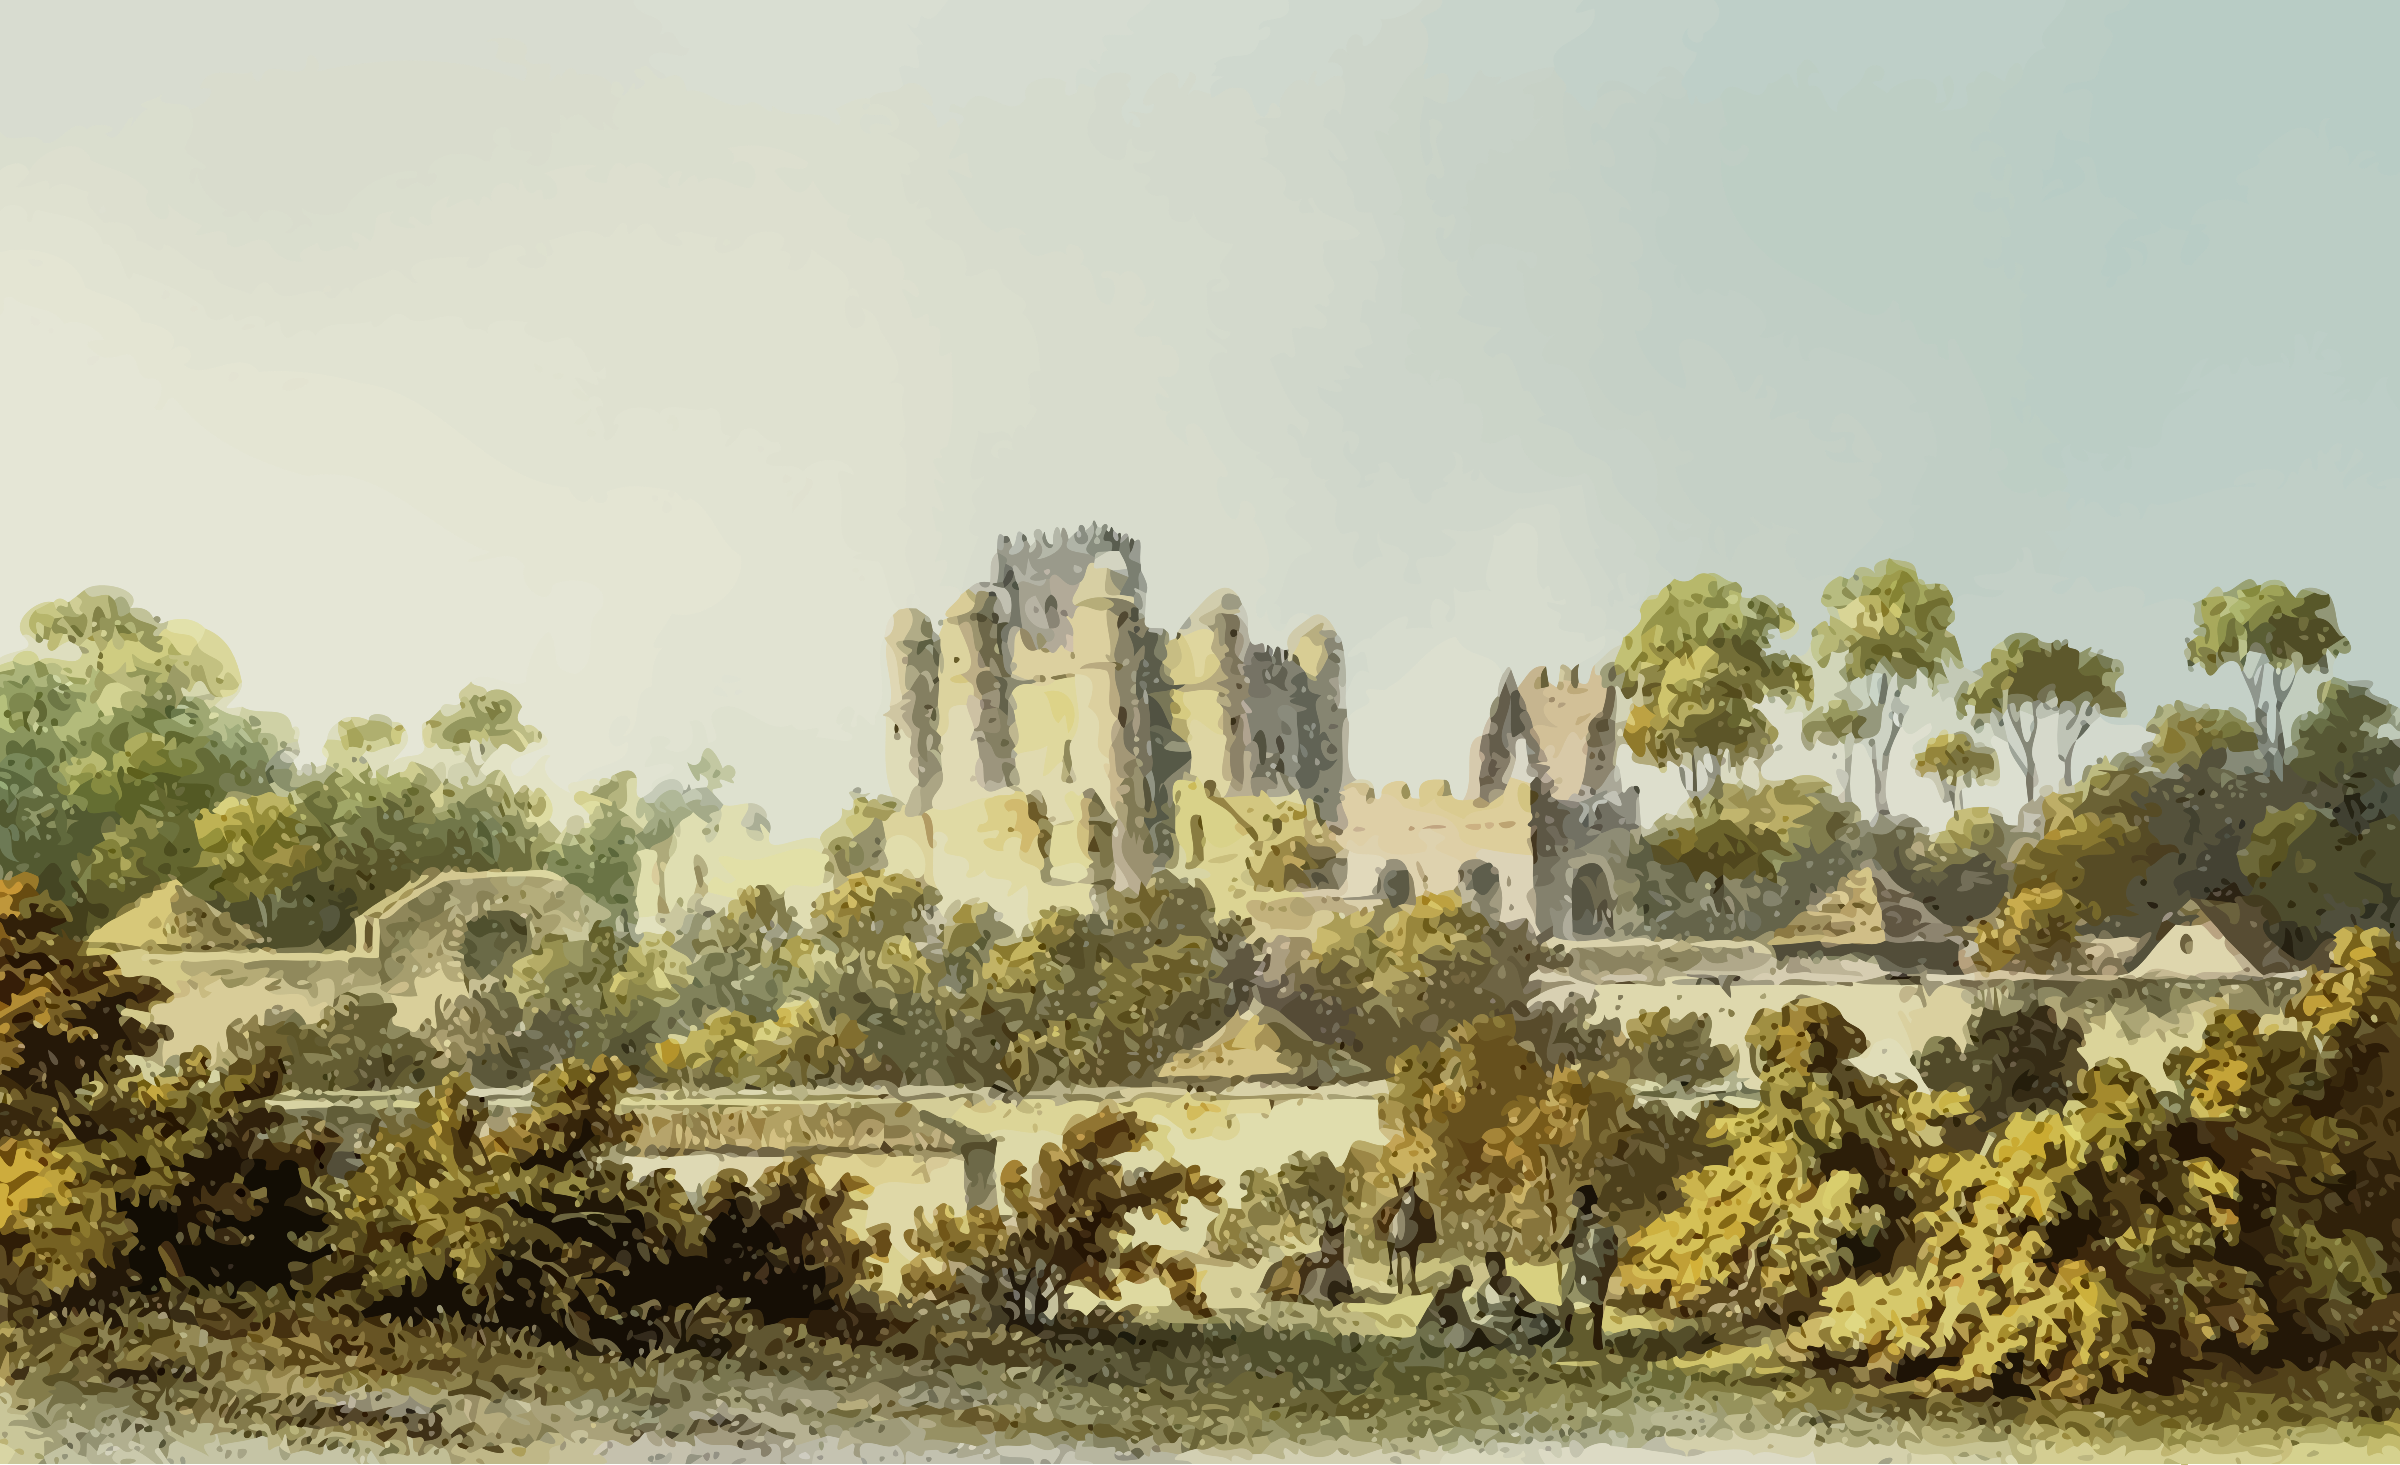 Castle scene by Firkin